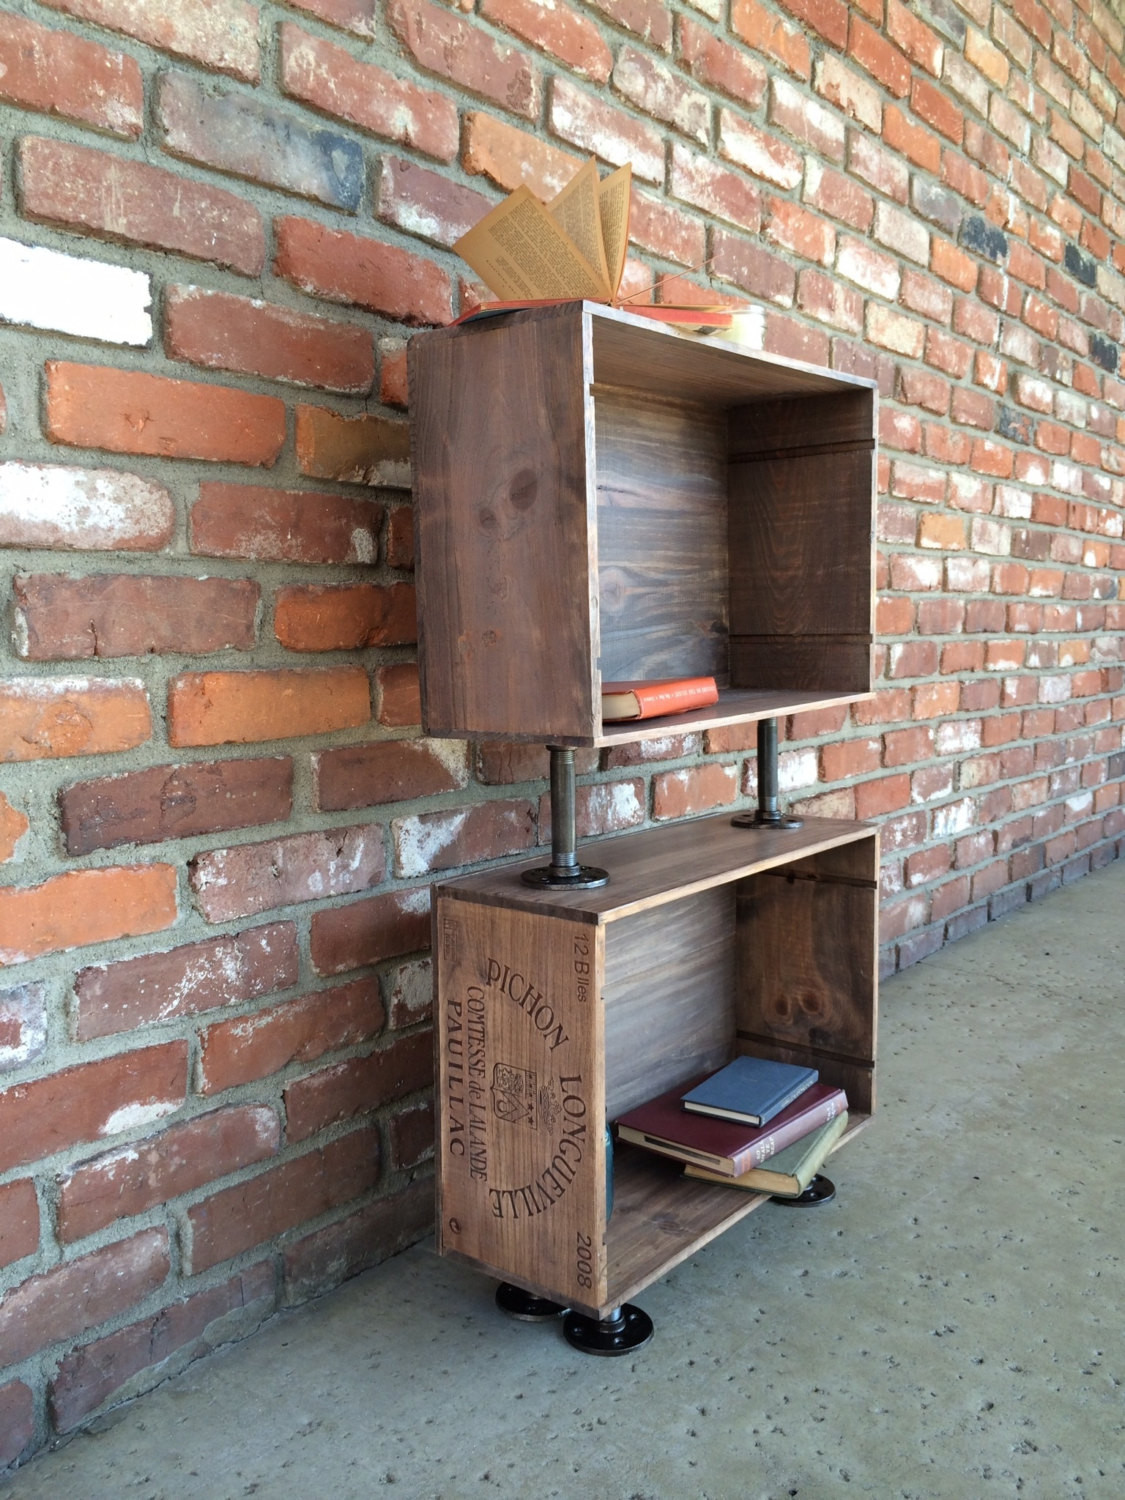 Best ideas about DIY Wooden Ideas . Save or Pin 16 Handy DIY Projects From Old Wooden Crates Style Now.